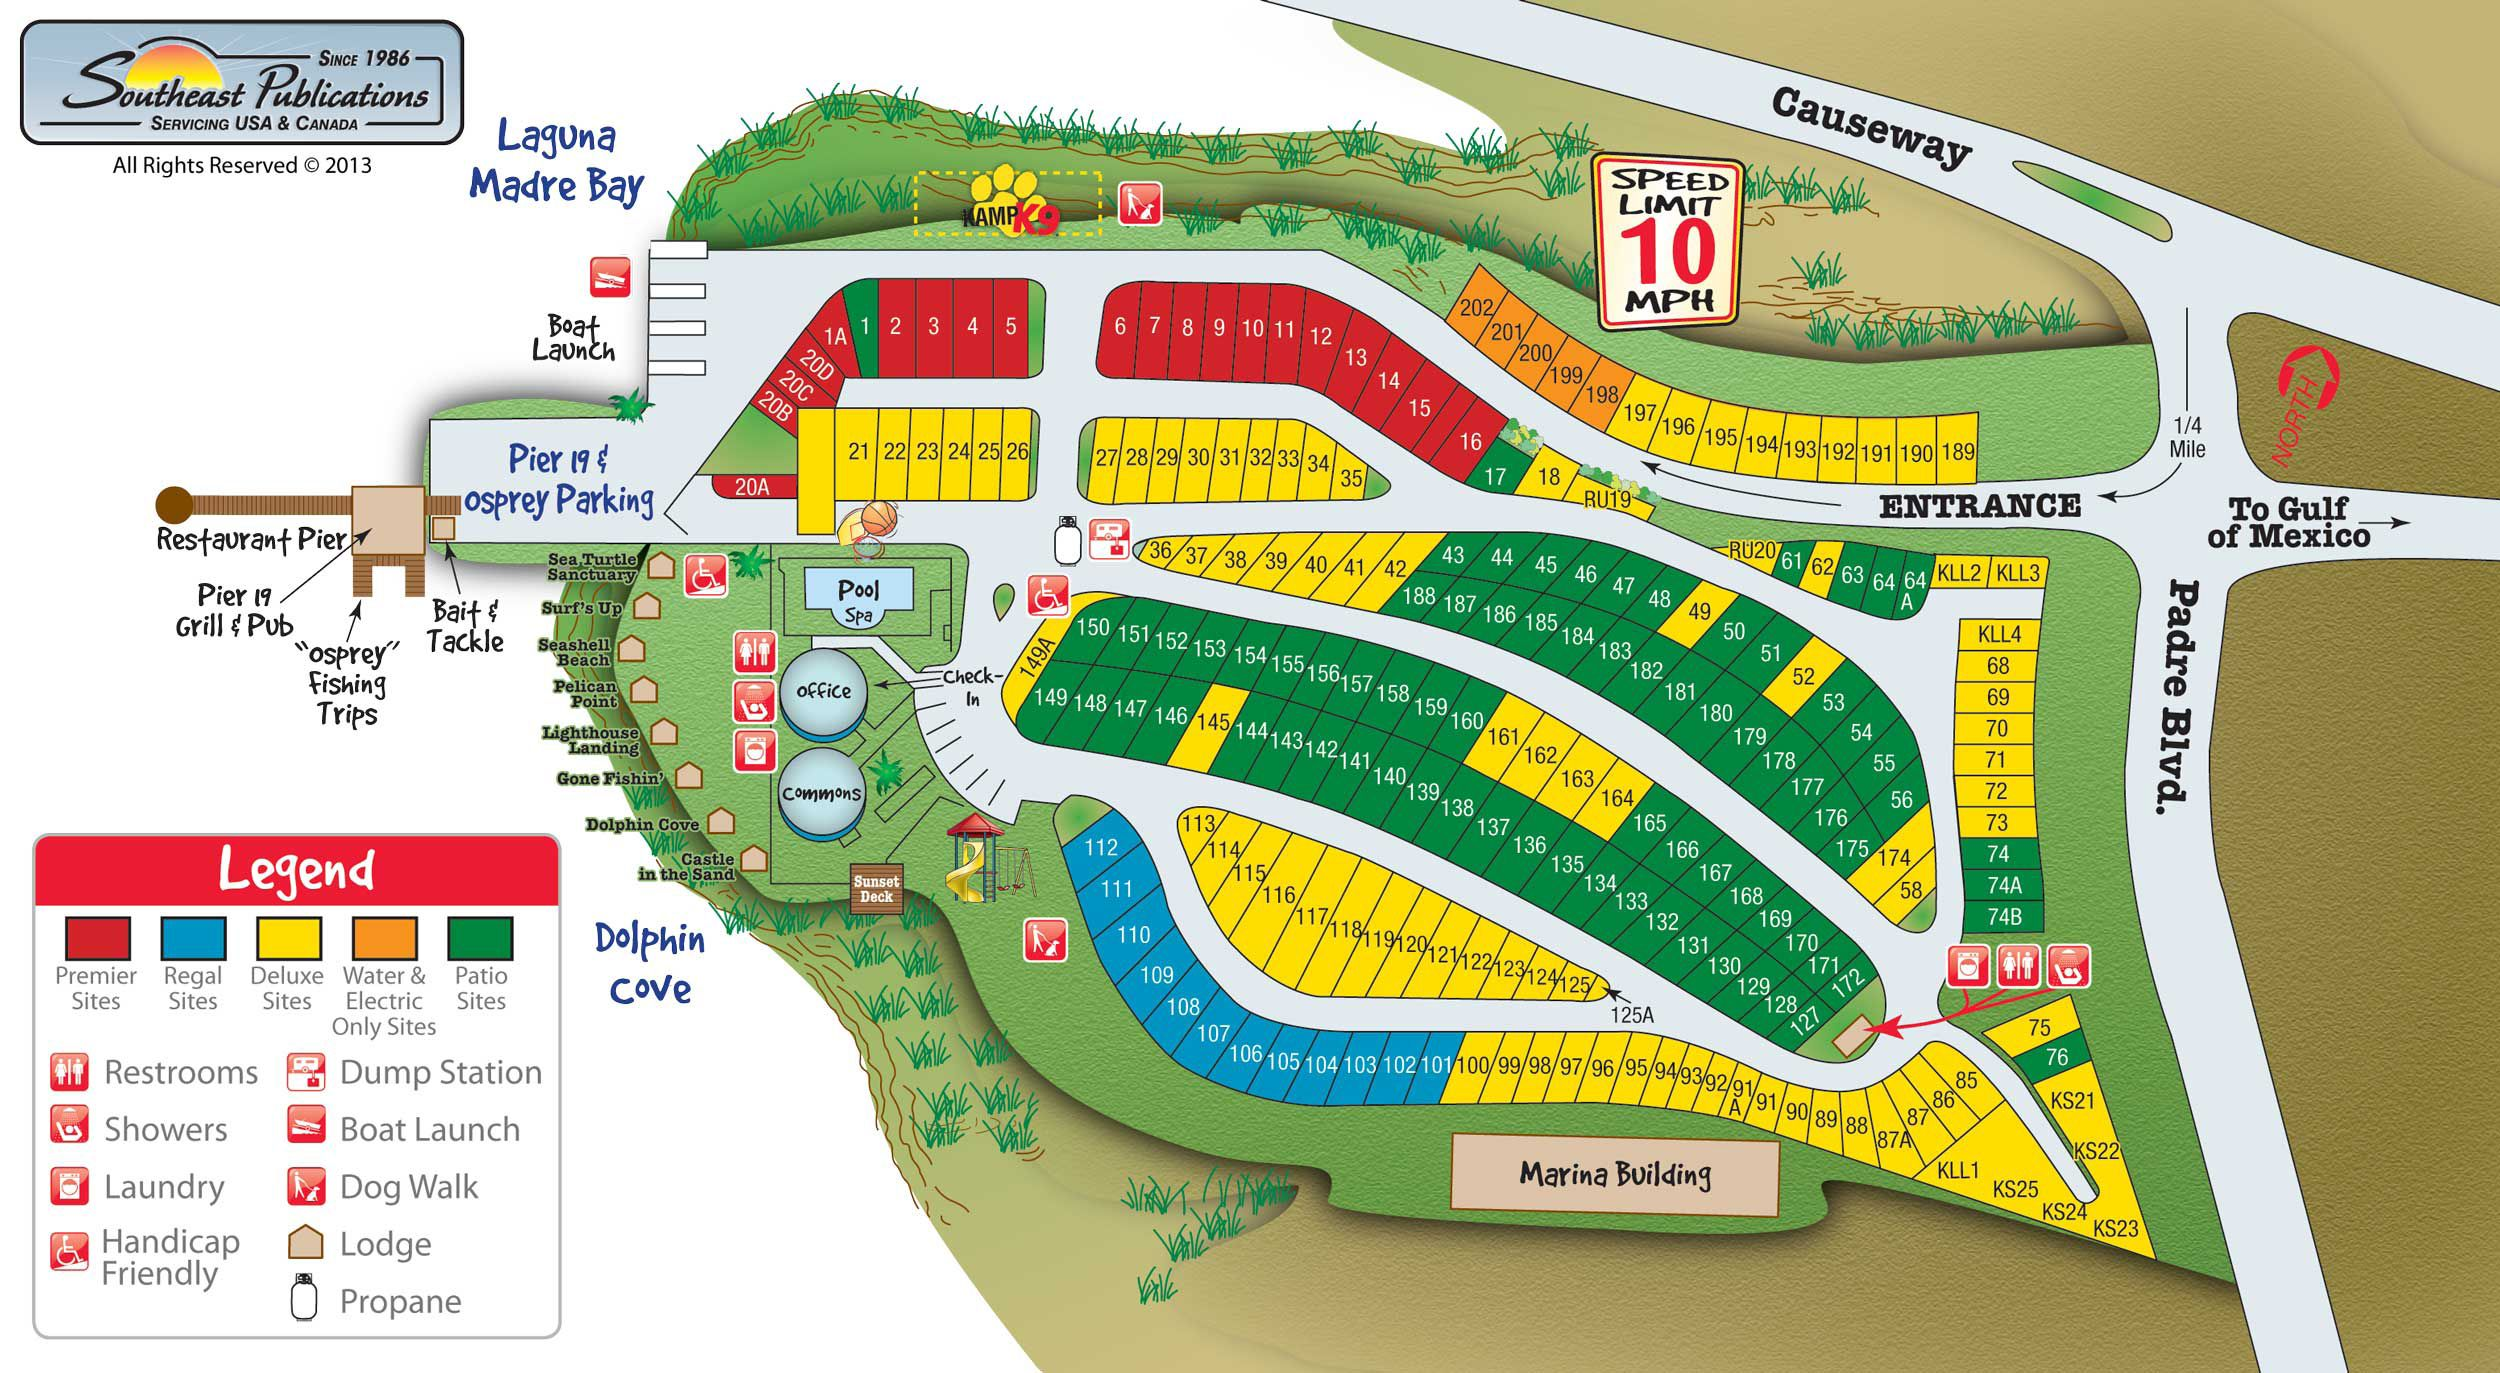 Activities Attractions And Events For The South Padre Island KOA - Rv parks usa map